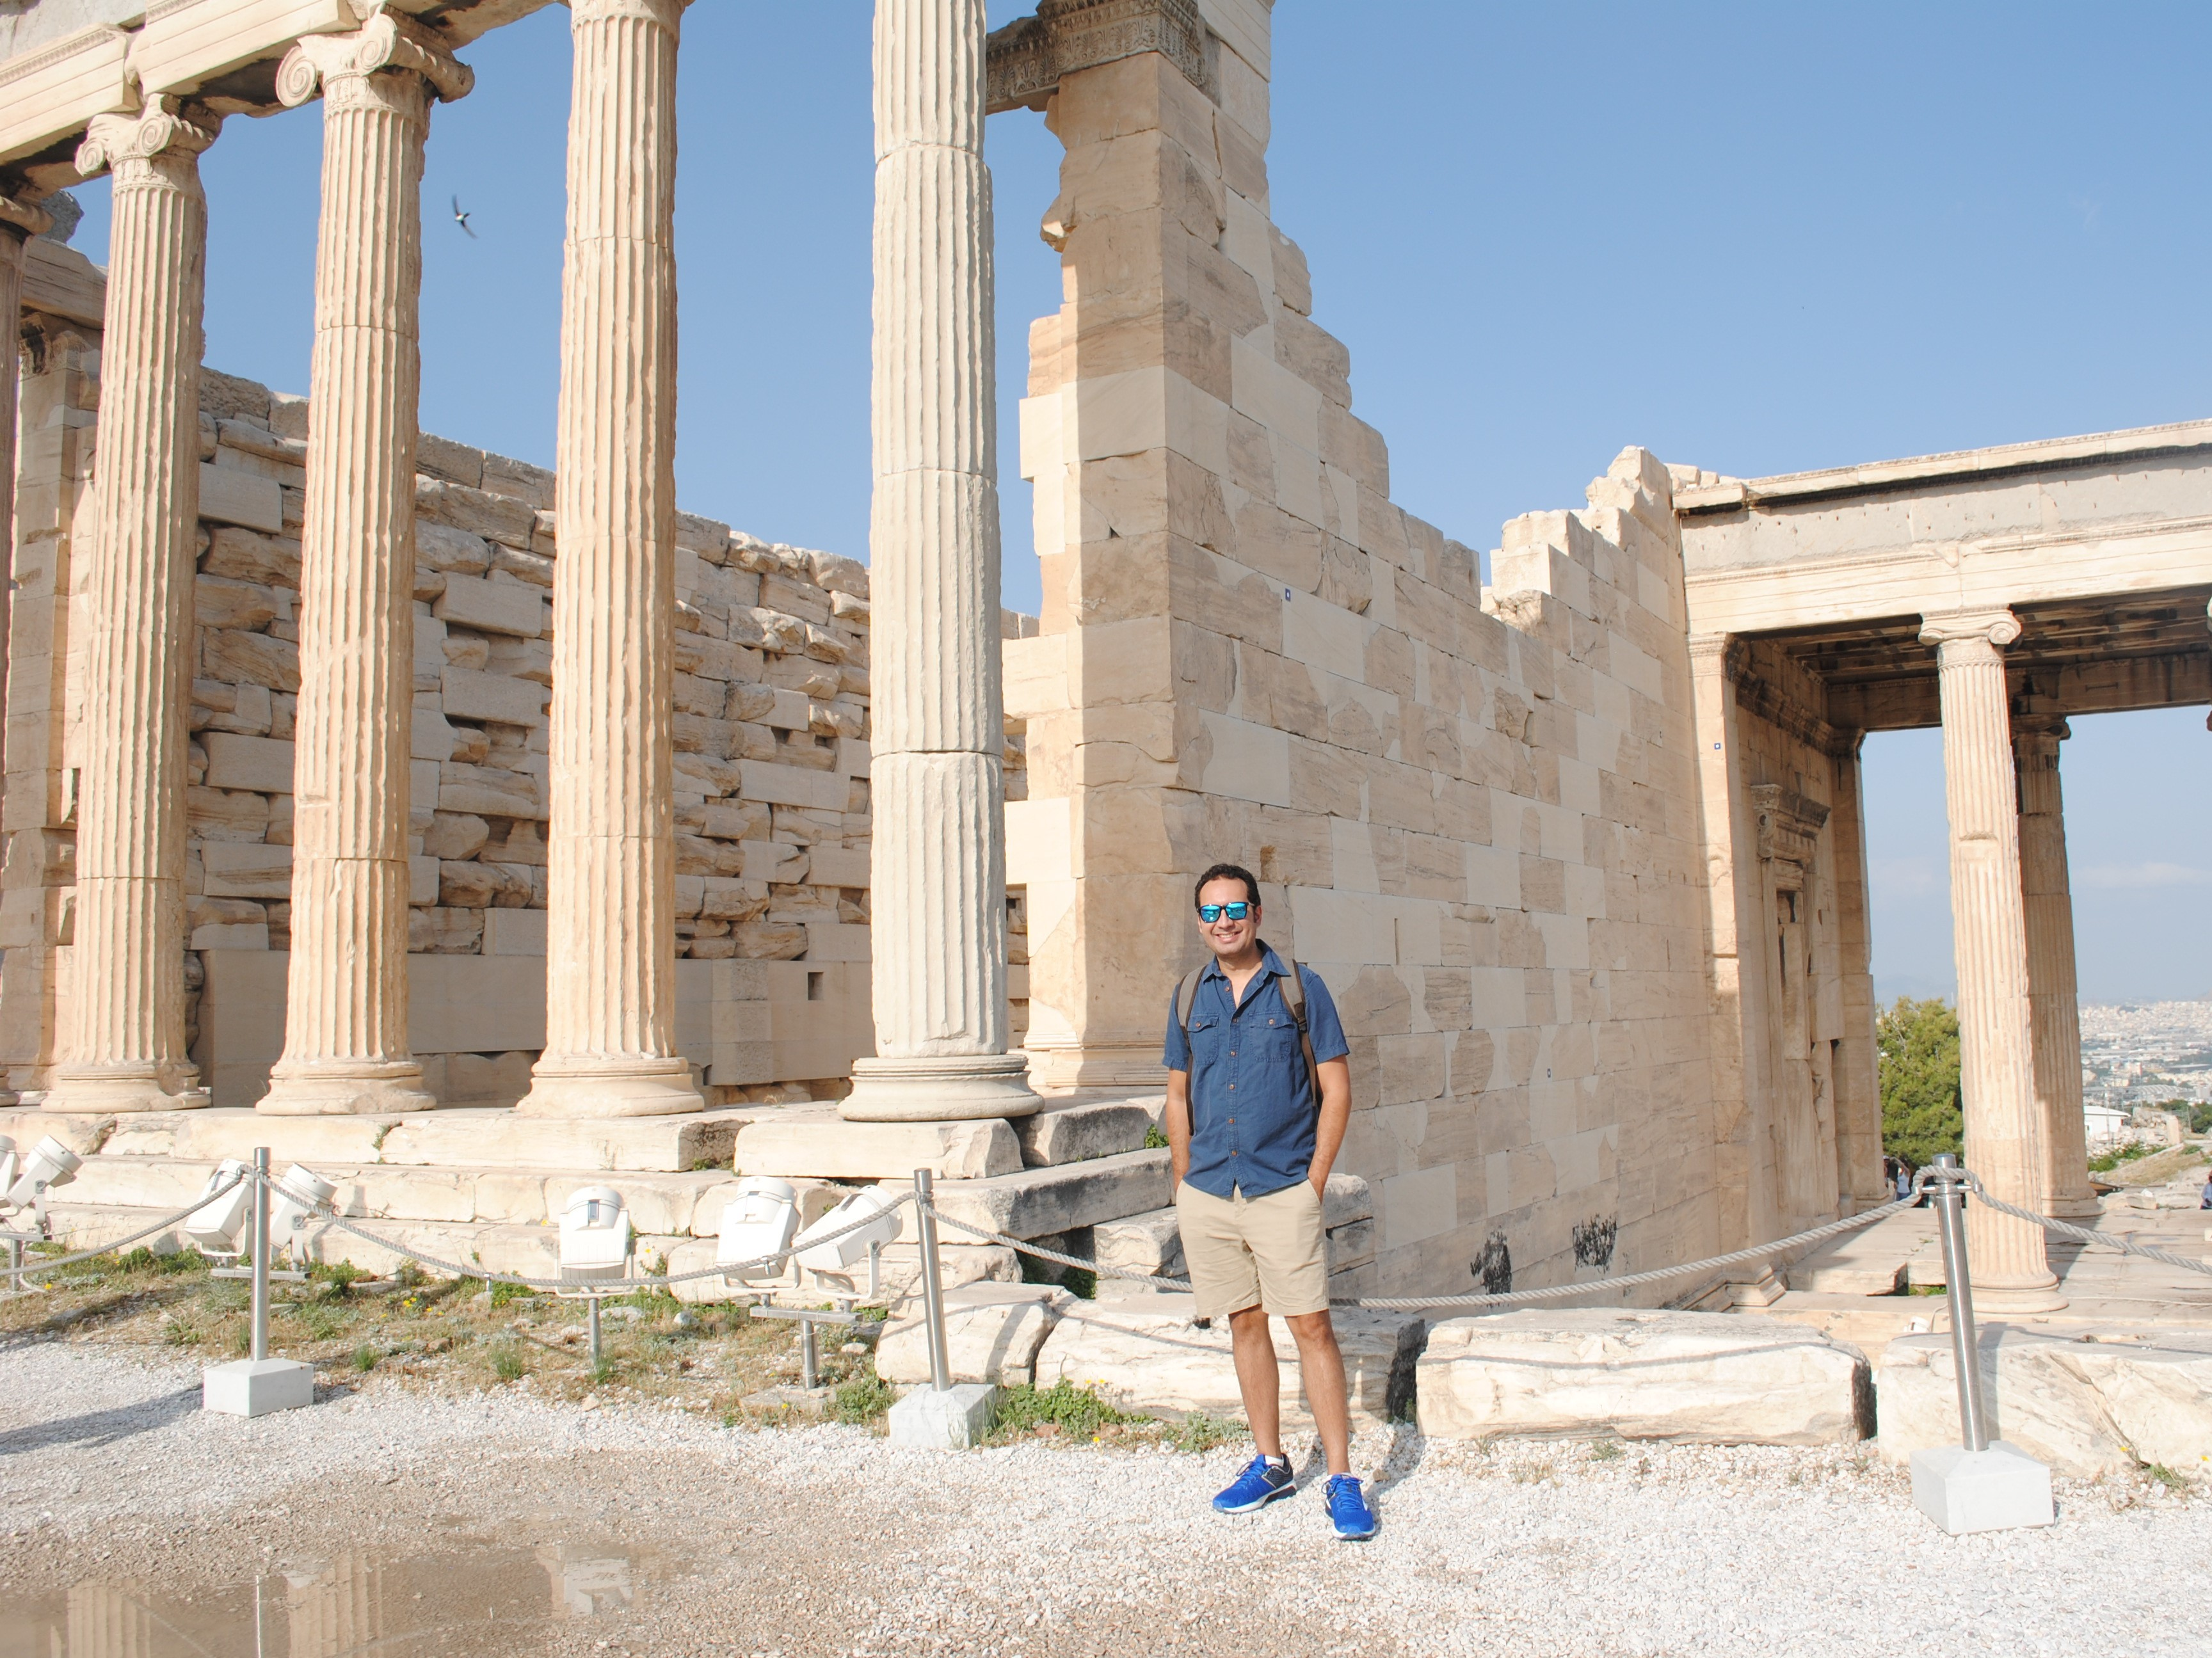 Arrive early to the Acropolis in Athens, Greece